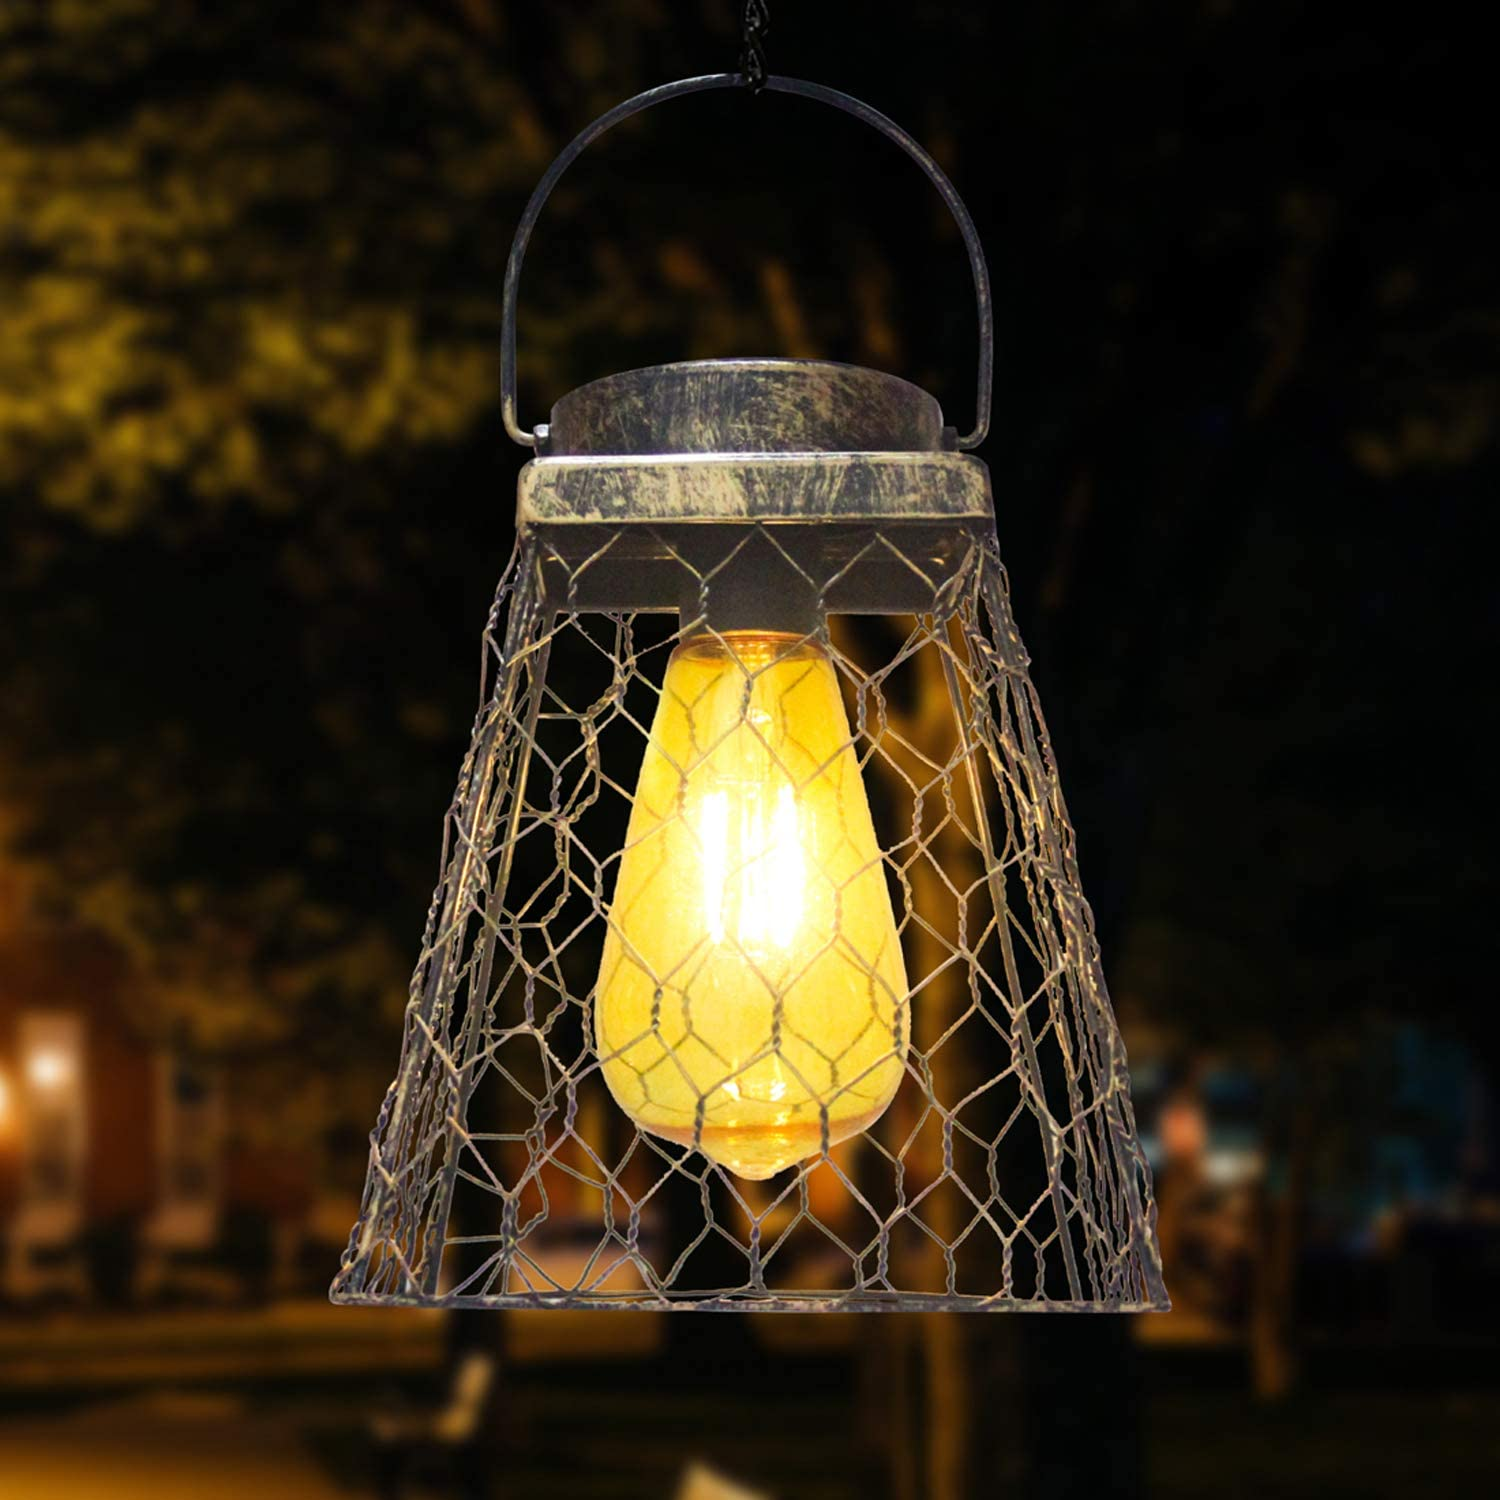 Cylinder Pathway Solar Lantern Outdoor Hanging Table Backyard Waterproof Metal Garden Solar Lantern with White Tungsten Bulb for Patio Party